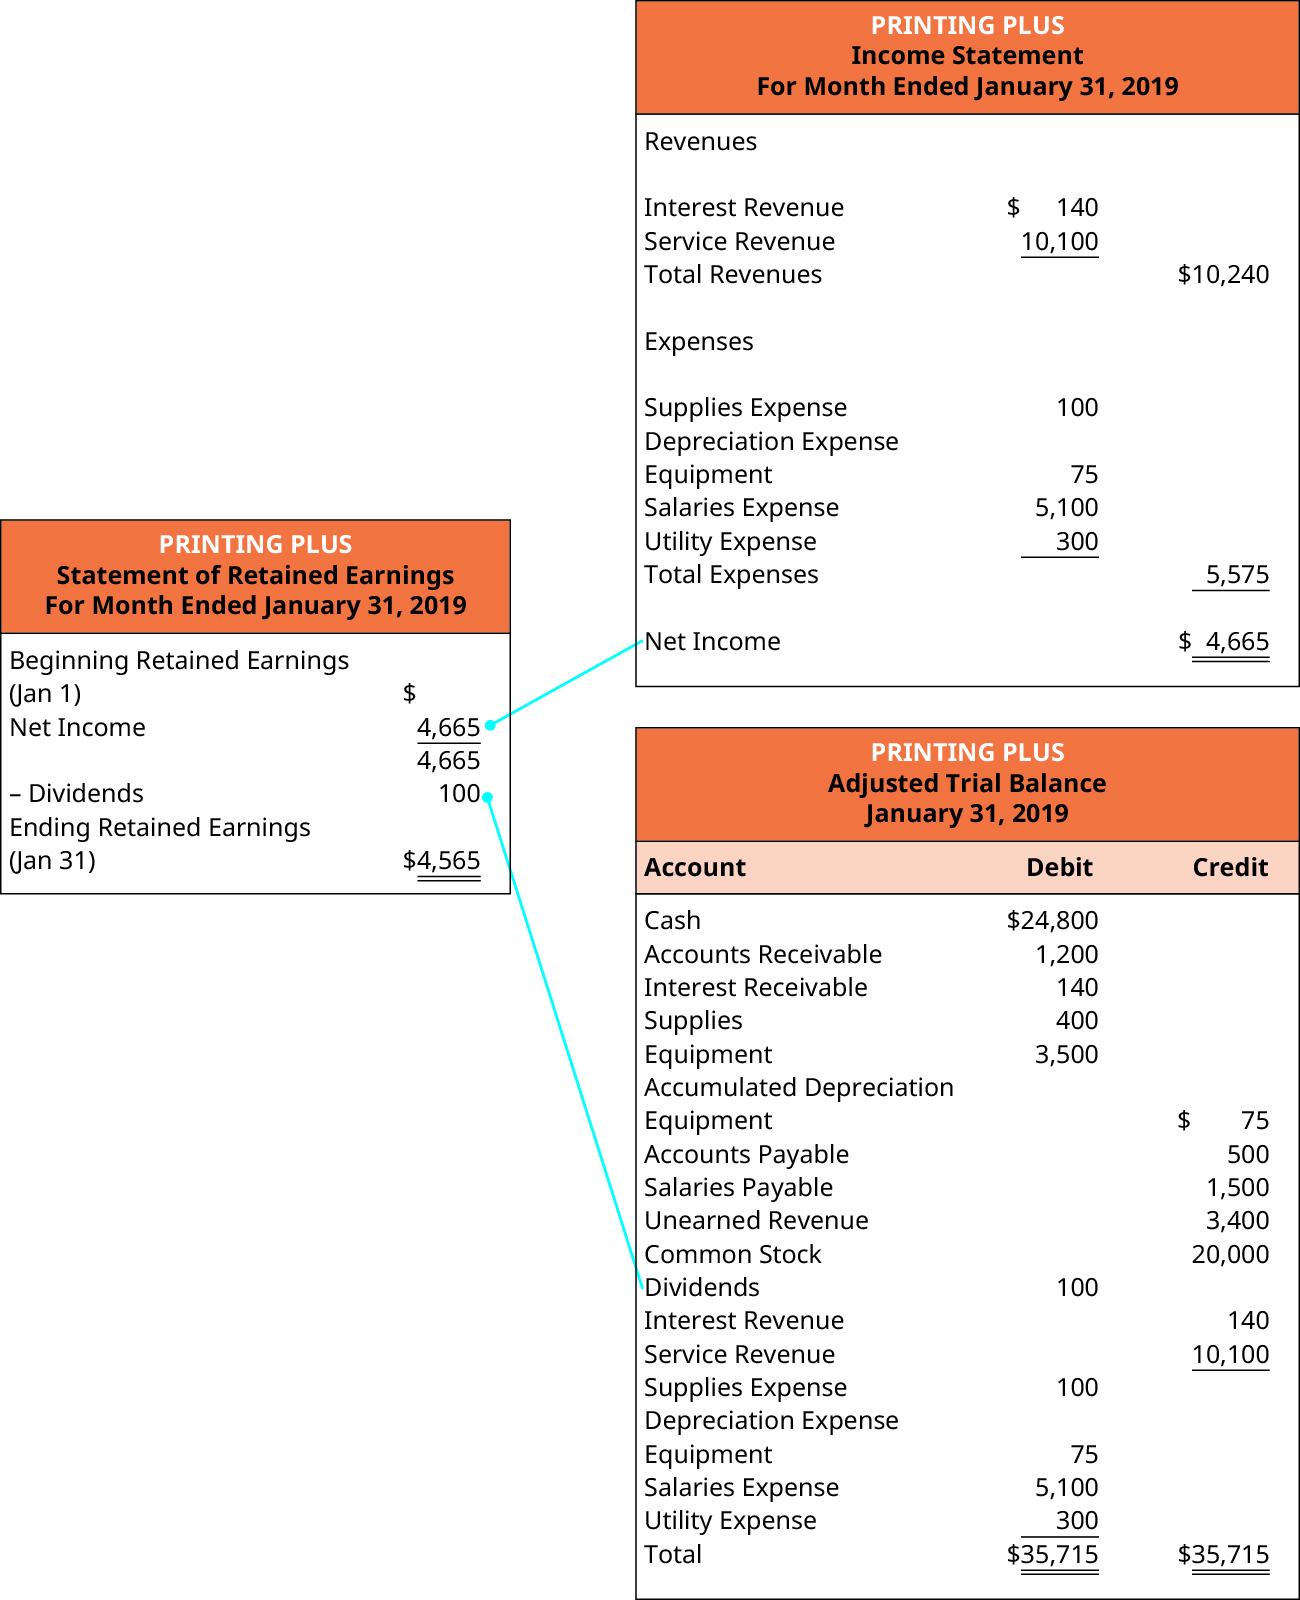 Printing Plus, Statement of Retained Earnings, For Month Ended January 31, 2019. Beginning Retained Earnings (January 1) $0. Plus Net Income 4,665. Minus Dividends (100). Ending Retained Earnings (January 31) $4,565. To the right of the Statement of Retained Earnings is the Printing Plus Income Statement with a line from Net Income to Net Income on the Statement of Retained Earnings. Below the Income Statement is the Printing Plus Adjusted Trial Balance with a line from Dividends to Dividends on the Statement of Retained Earnings. Printing Plus, Income Statement, For the Month Ended January 31, 2019. Revenues: Interest Revenue $140; Service Revenue 10,100; Total Revenues $10,240. Expenses: Supplies Expense 100; Depreciation Expense: Equipment 75; Salaries Expense 5,100; Utility Expense 300; Total Expenses 5,575. Net Income $4,665. Printing Plus, Adjusted Trial Balance, January 31, 2019. Debit accounts: Cash $24,800; Accounts Receivable 1,200; Interest Receivable 140; Supplies 400; Equipment; 3,500; Dividends 100; Supplies Expense 100; Equipment 75; Salaries Expense 5,100; Utility Expense 300; Total Debit $35,715. Credit accounts; Equipment $75; Accounts Payable 500; Salaries Payable 1,500; Unearned Revenue 3,400; Common Stock 20,000; Interest Revenue 140; Service Revenue 10,100; Total Credit $35,715.